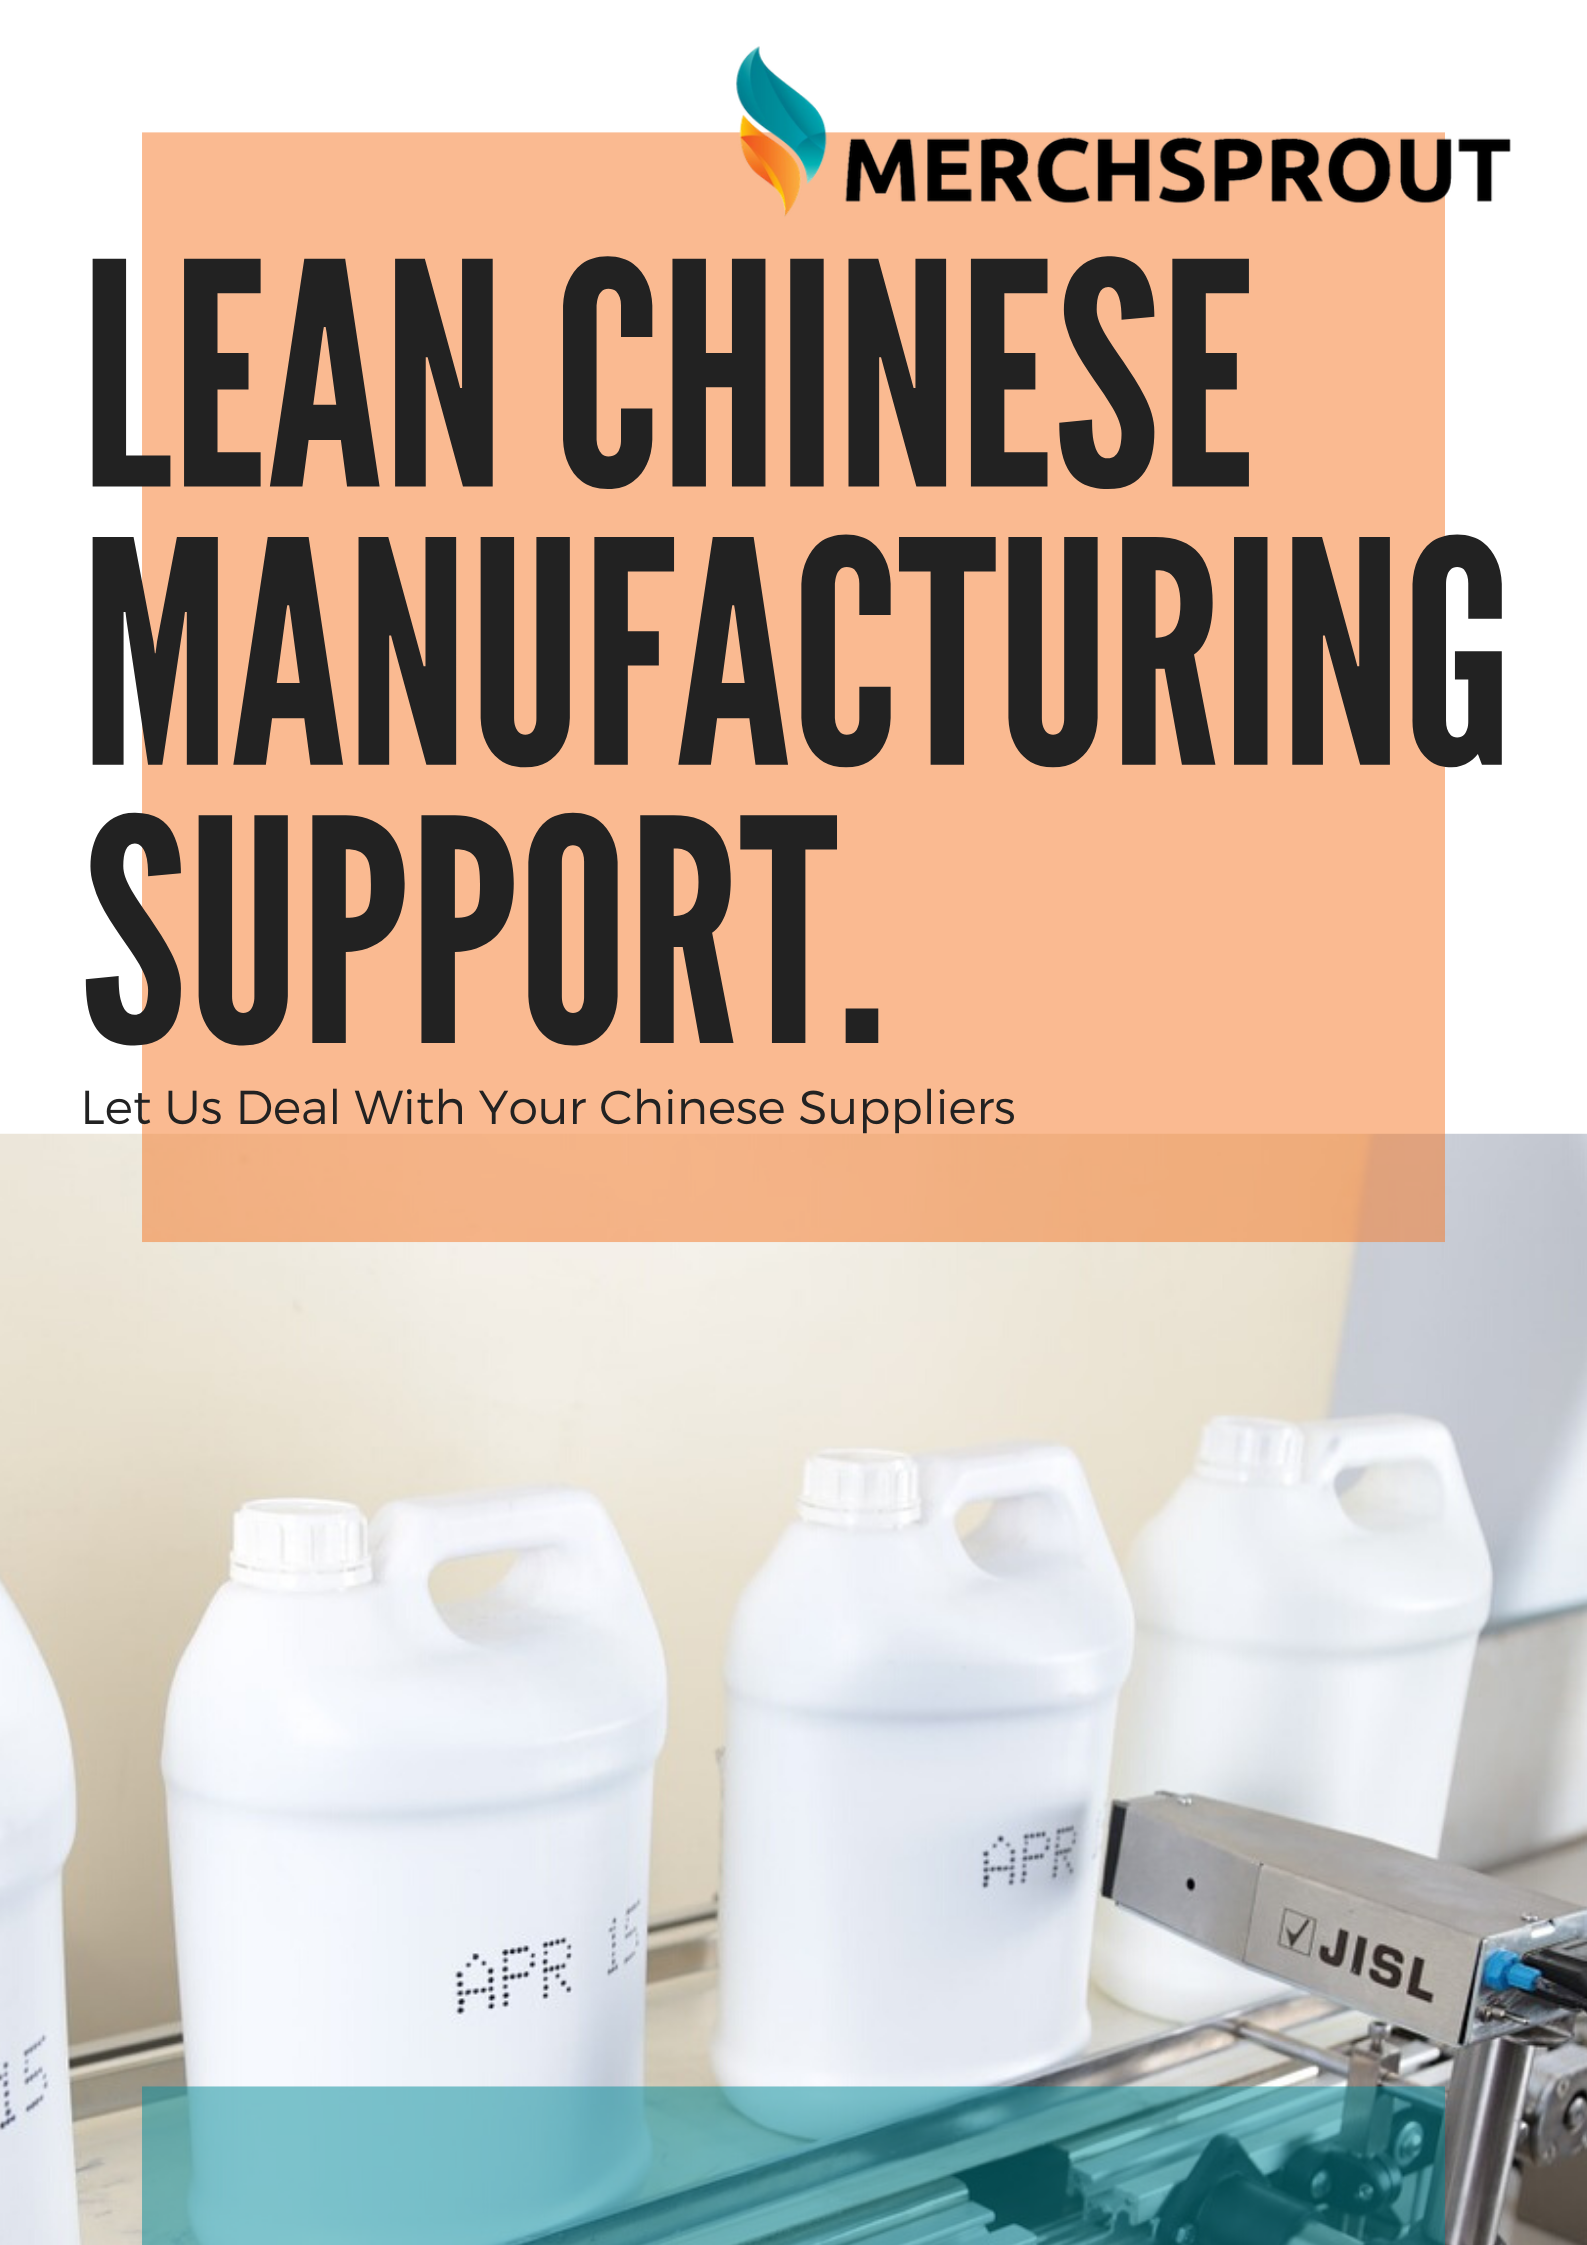 LEAN-Chinese-Manufacturing-Support